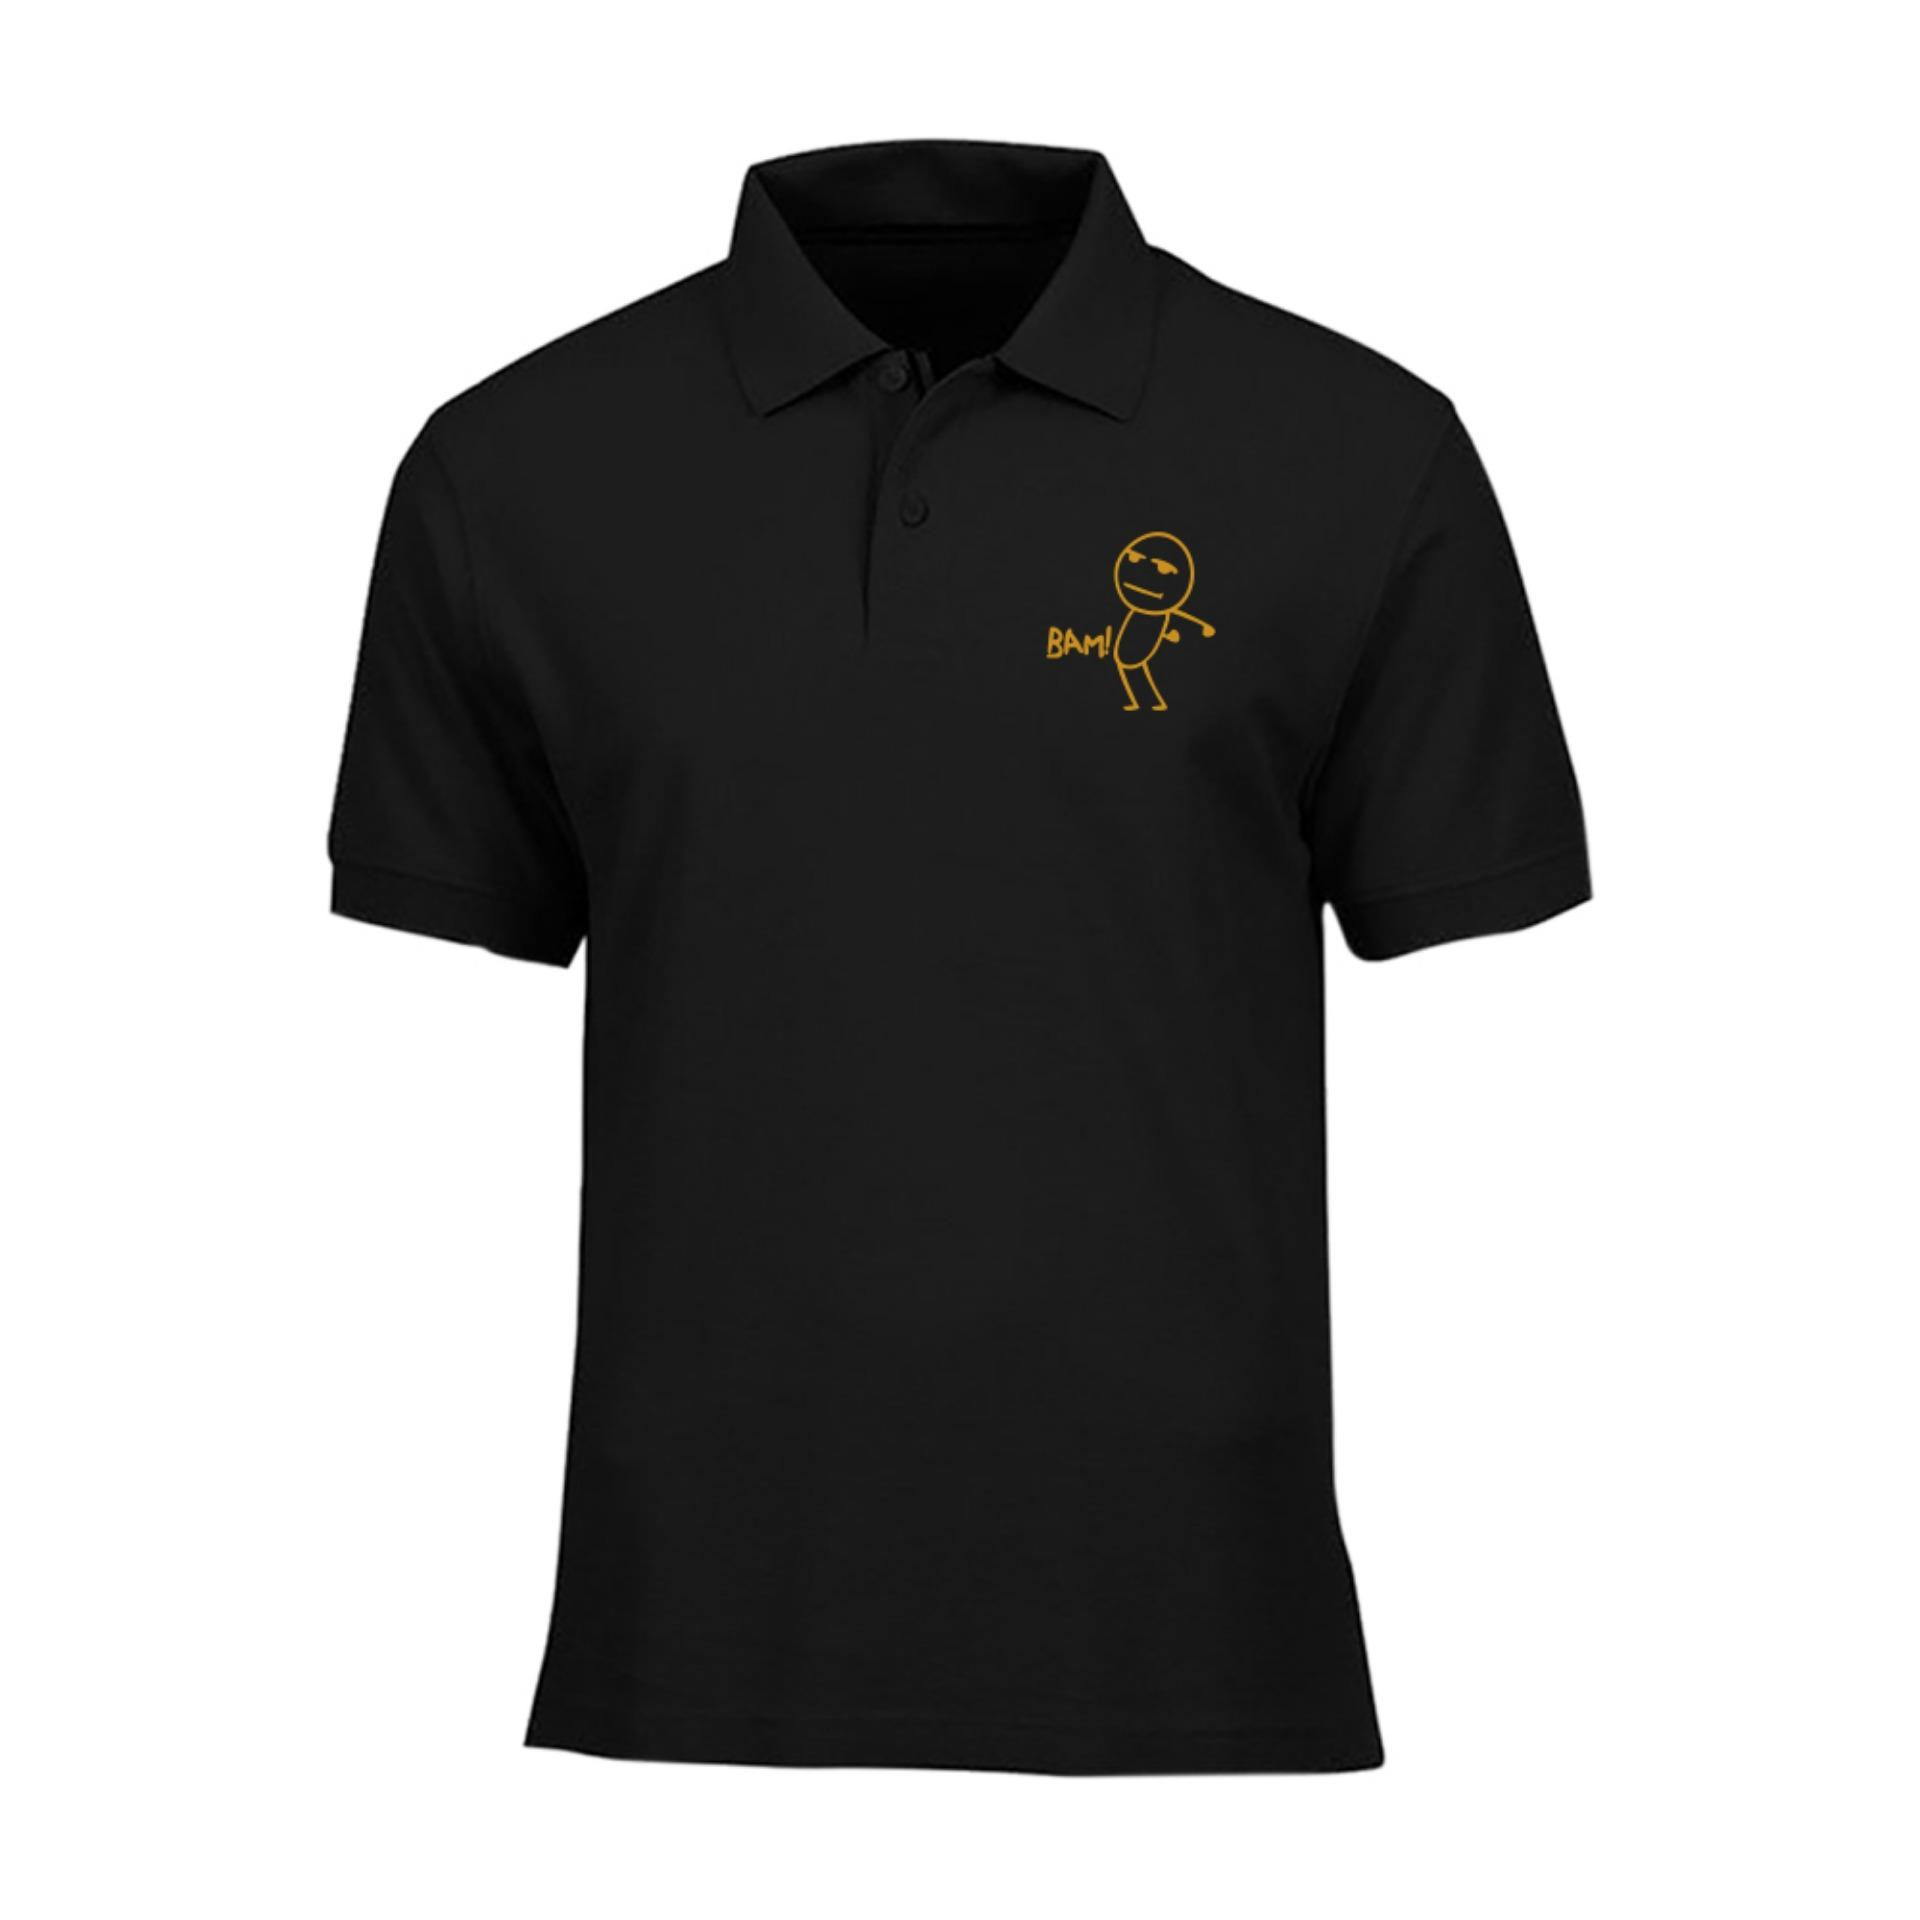 IndoClothing Polo Shirt BAM ! - Hitam Gold